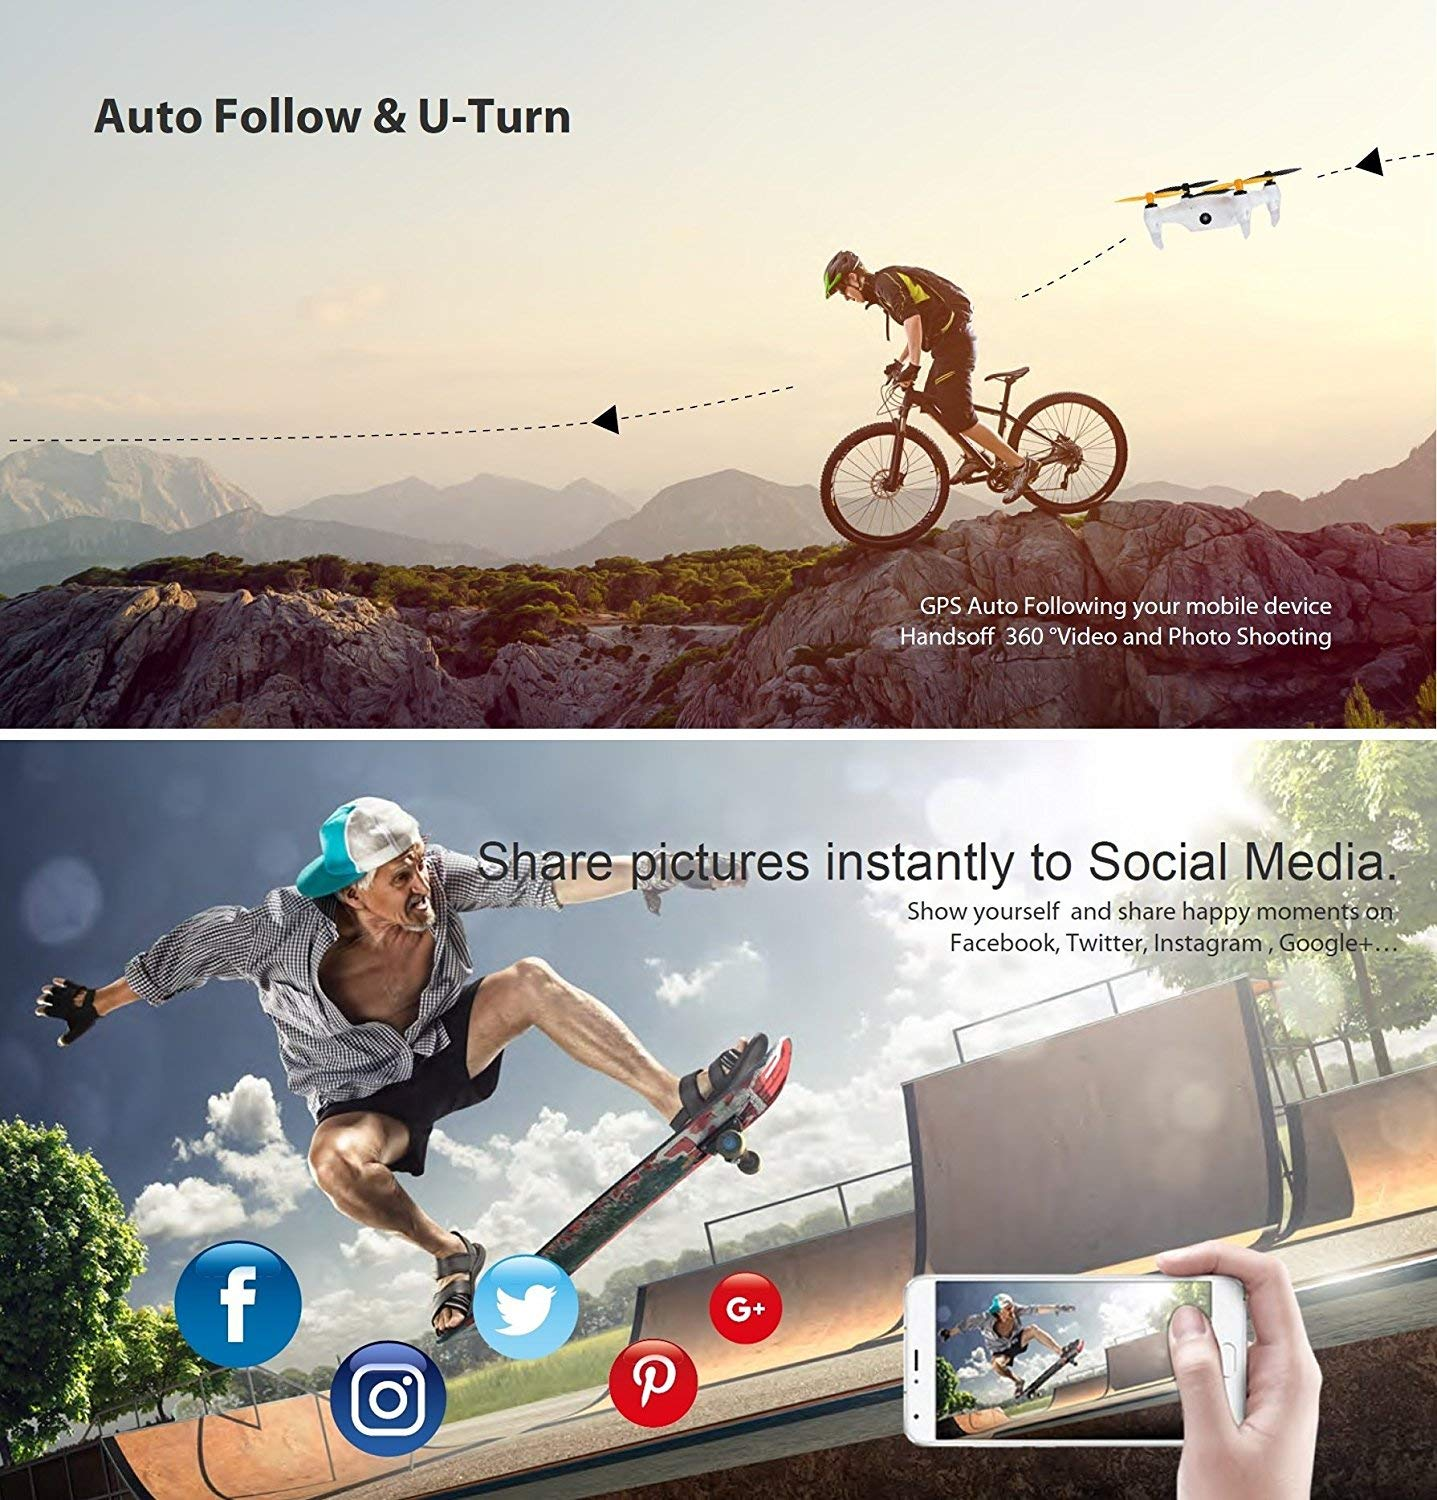 Smart Nano Drone with 15MP Camera 1080P FHD Live Video WiFi Quadcopter GPS, One Touch Take-Off and Landing for Beginners On iPhone, iPad & Samsung Galaxy & More Smart Devices (White)